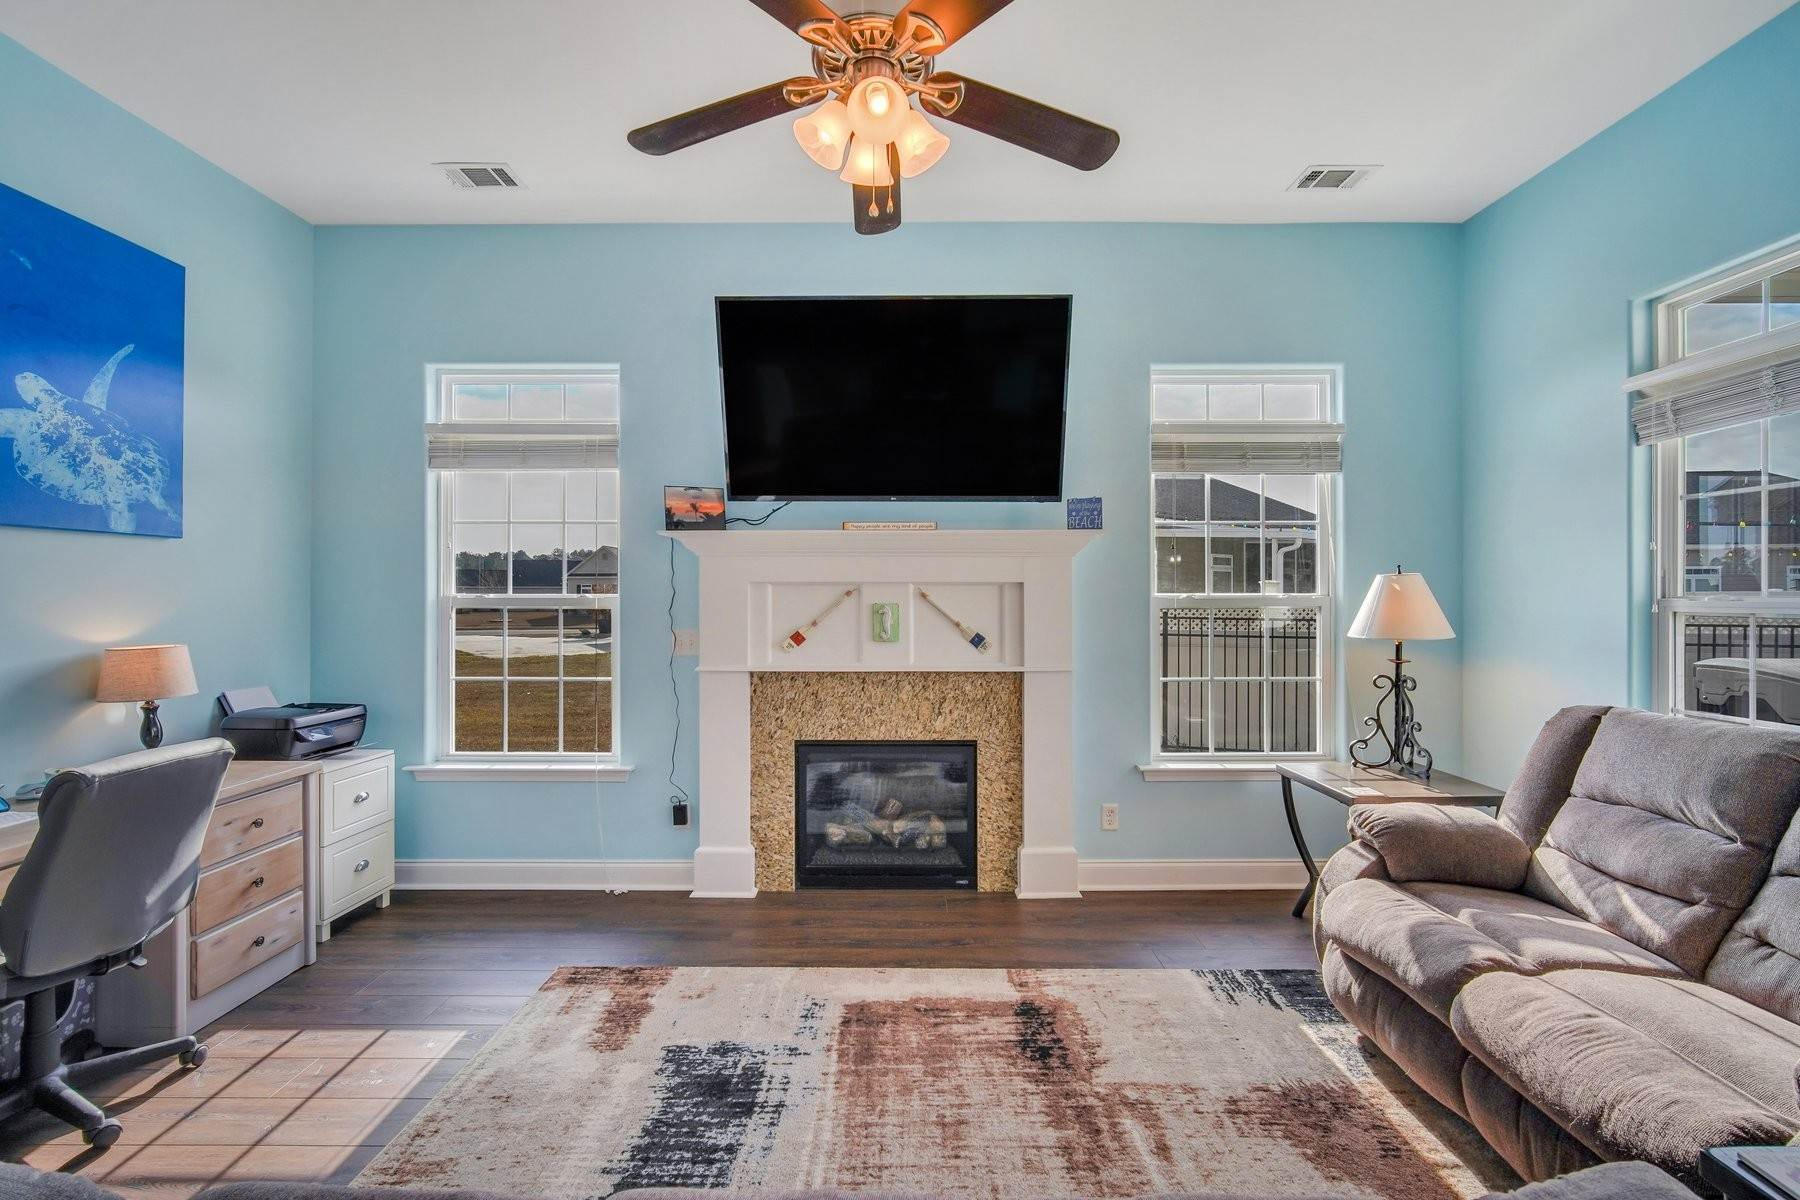 9. Single Family Homes for Sale at May Model in Hearthstone Lake 749 Hearthstone Drive Ridgeland, South Carolina 29936 United States